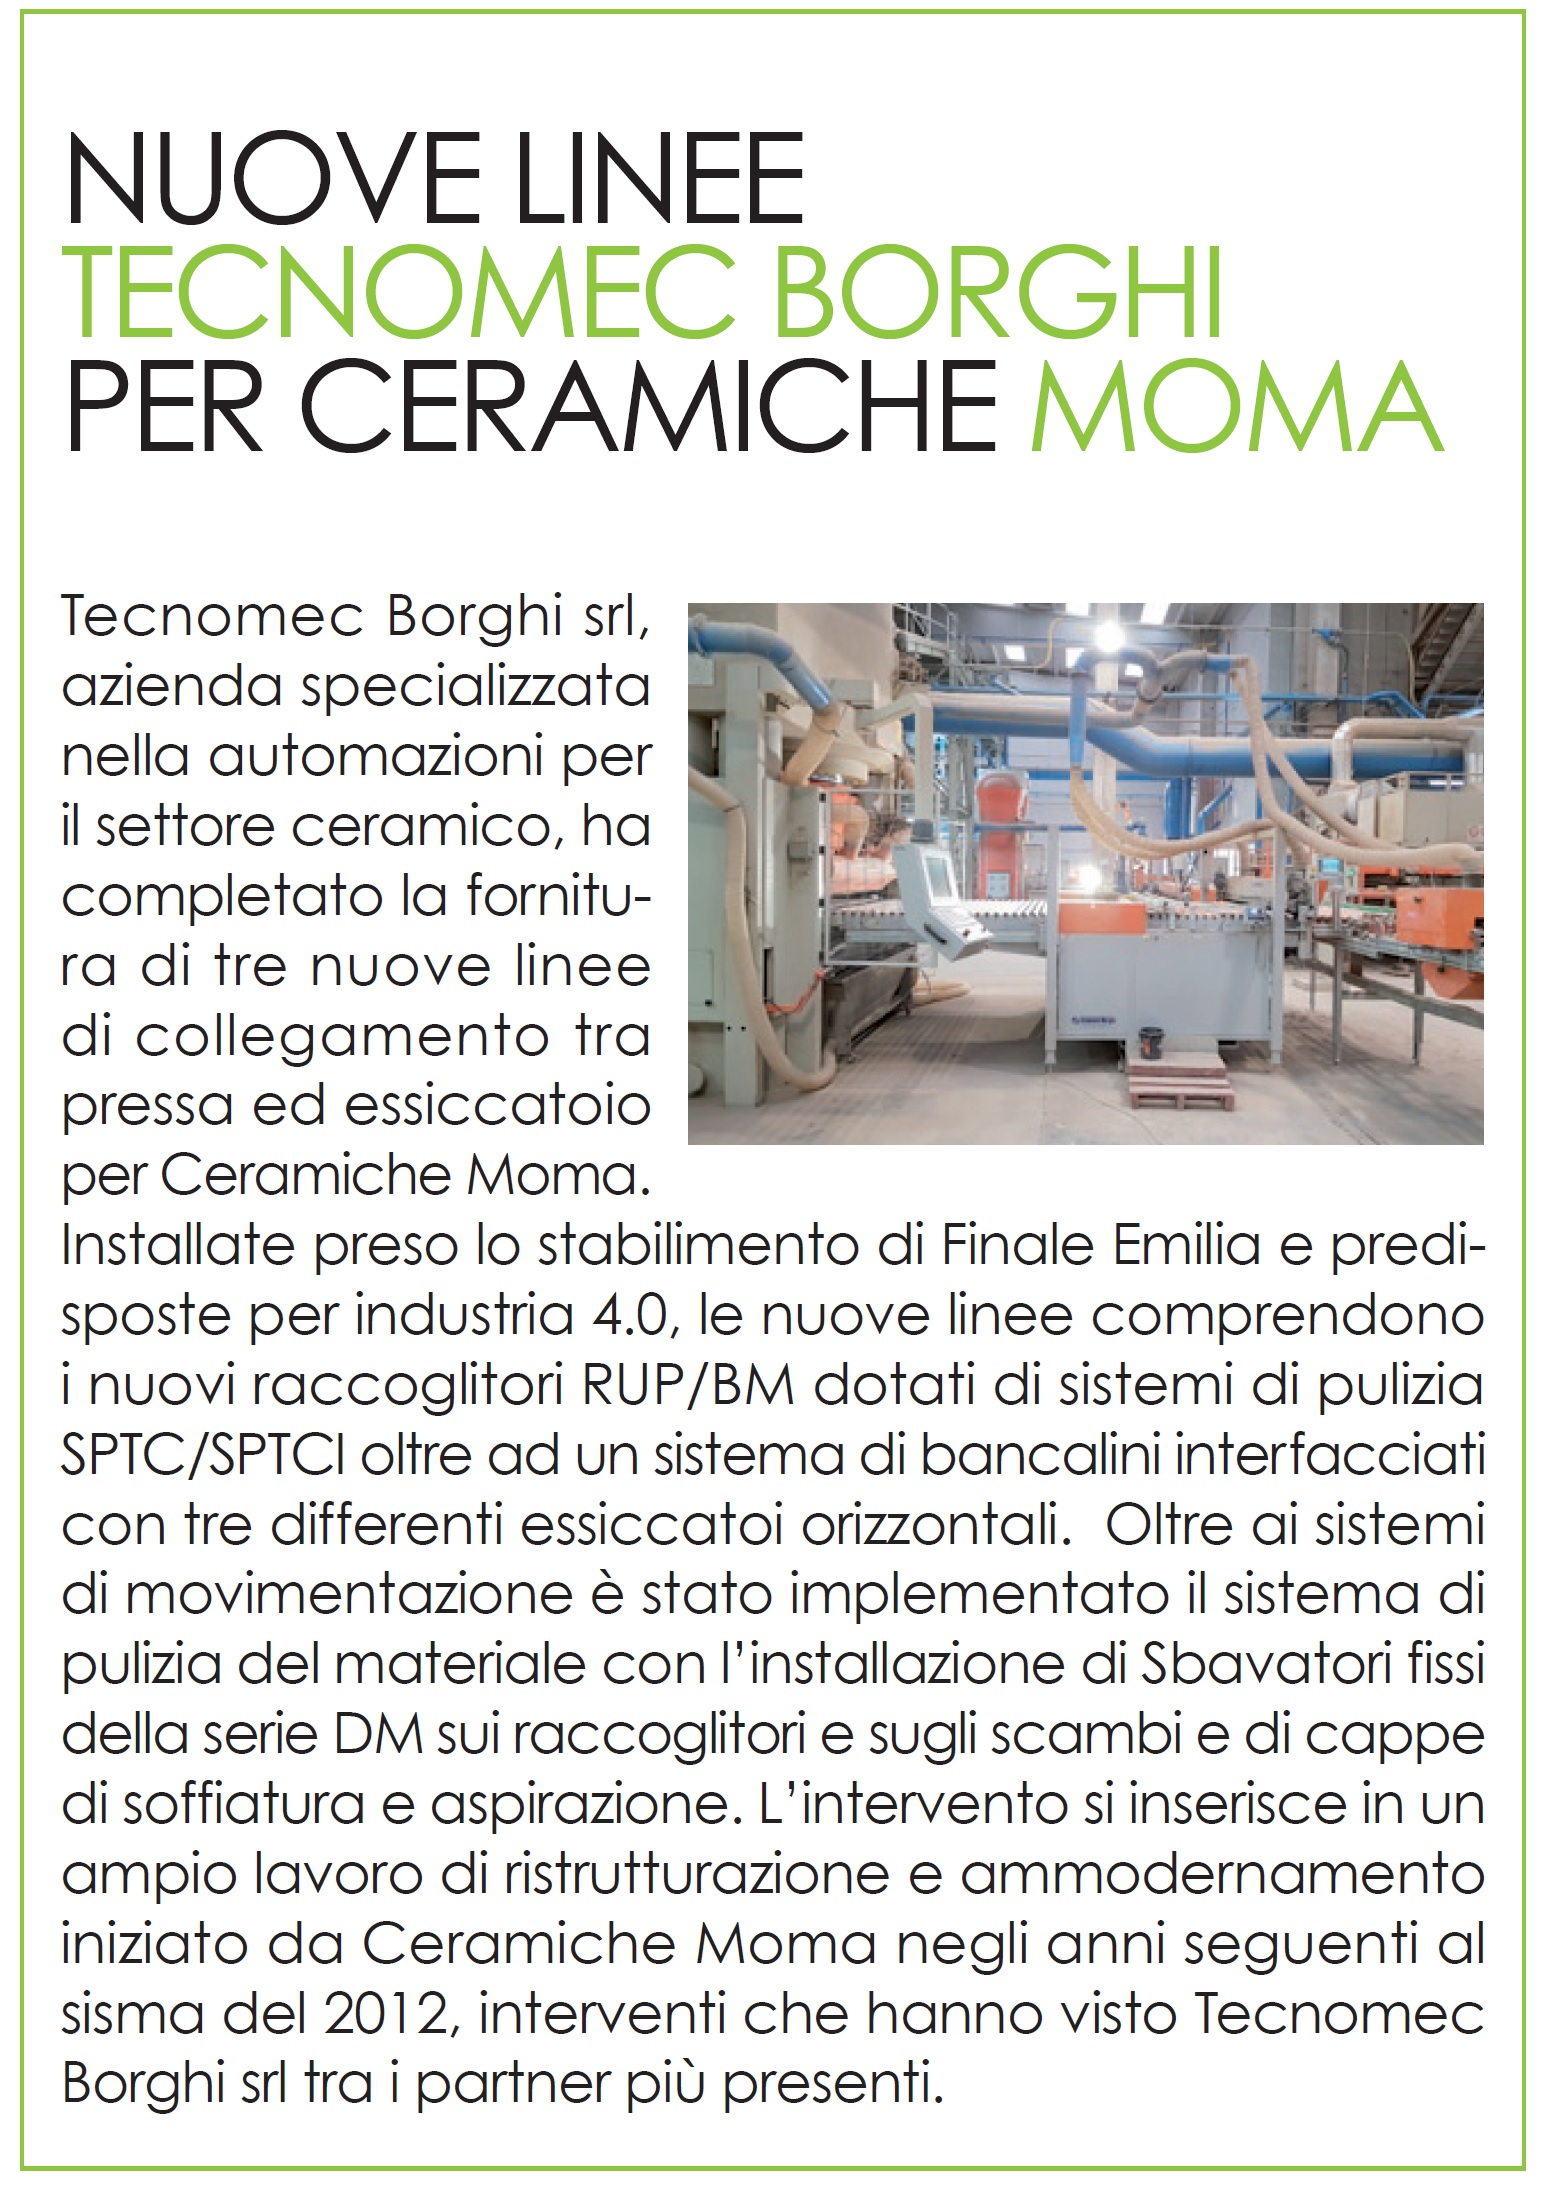 News from Ceramicanda!